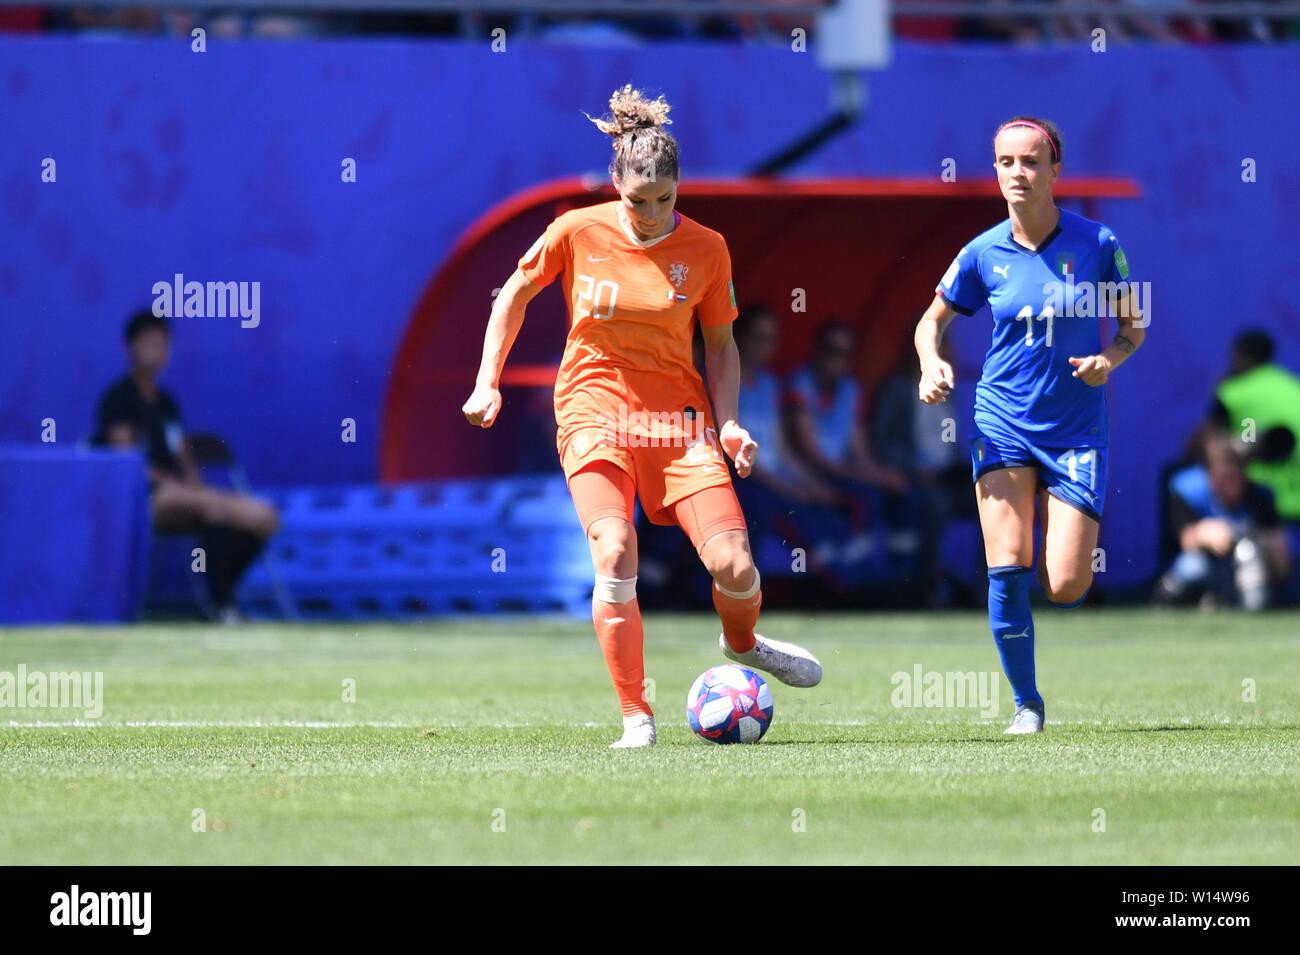 Dominique Bloodworth (Holland, Netherlands, 20) with Ball in front of Barbara Bonansea (Italy) (11), 29.06.2019, Valenciennes (France), Football, FIFA Women's World Cup 2019, Quarterfinals Italy - Netherlands, FIFA REGULATIONS PROHIBIT ANY USE OF PHOTOGRAPHS AS IMAGE SEQUENCES AND / OR QUASI VIDEO. | usage worldwide Stock Photo